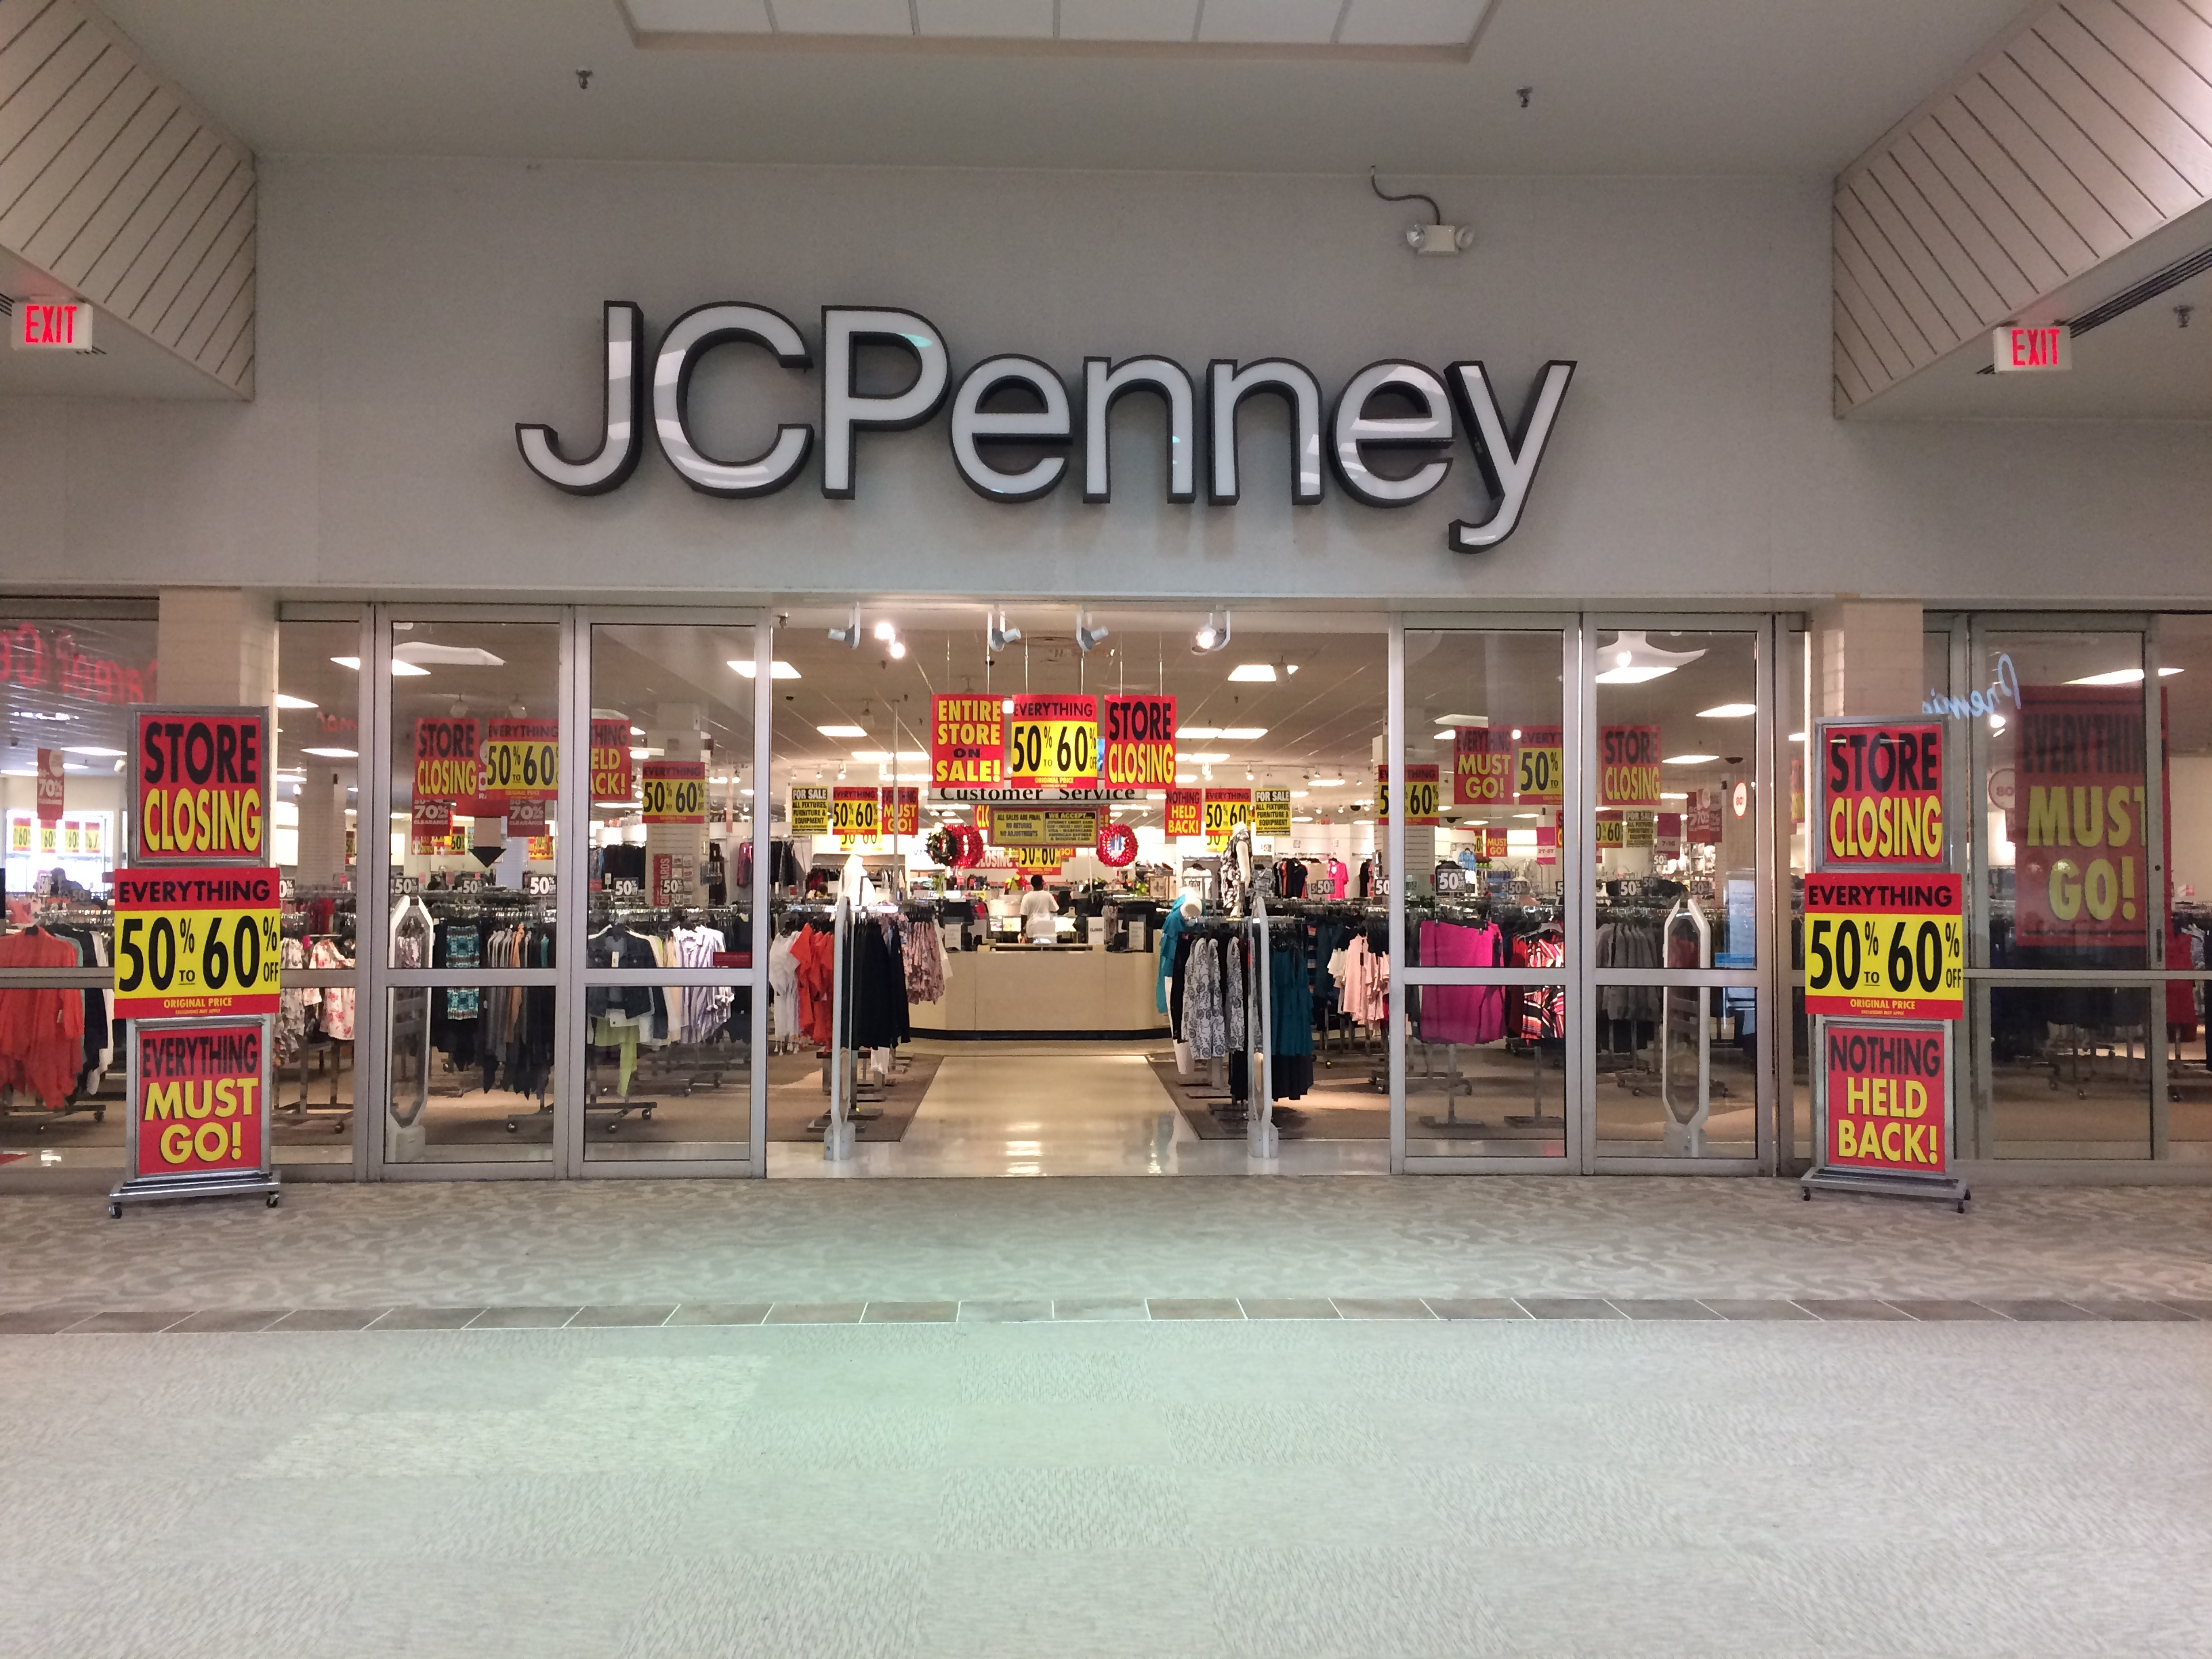 Jcpenney furniture outlet atlanta ga design by conran for Affordable furniture greenbriar